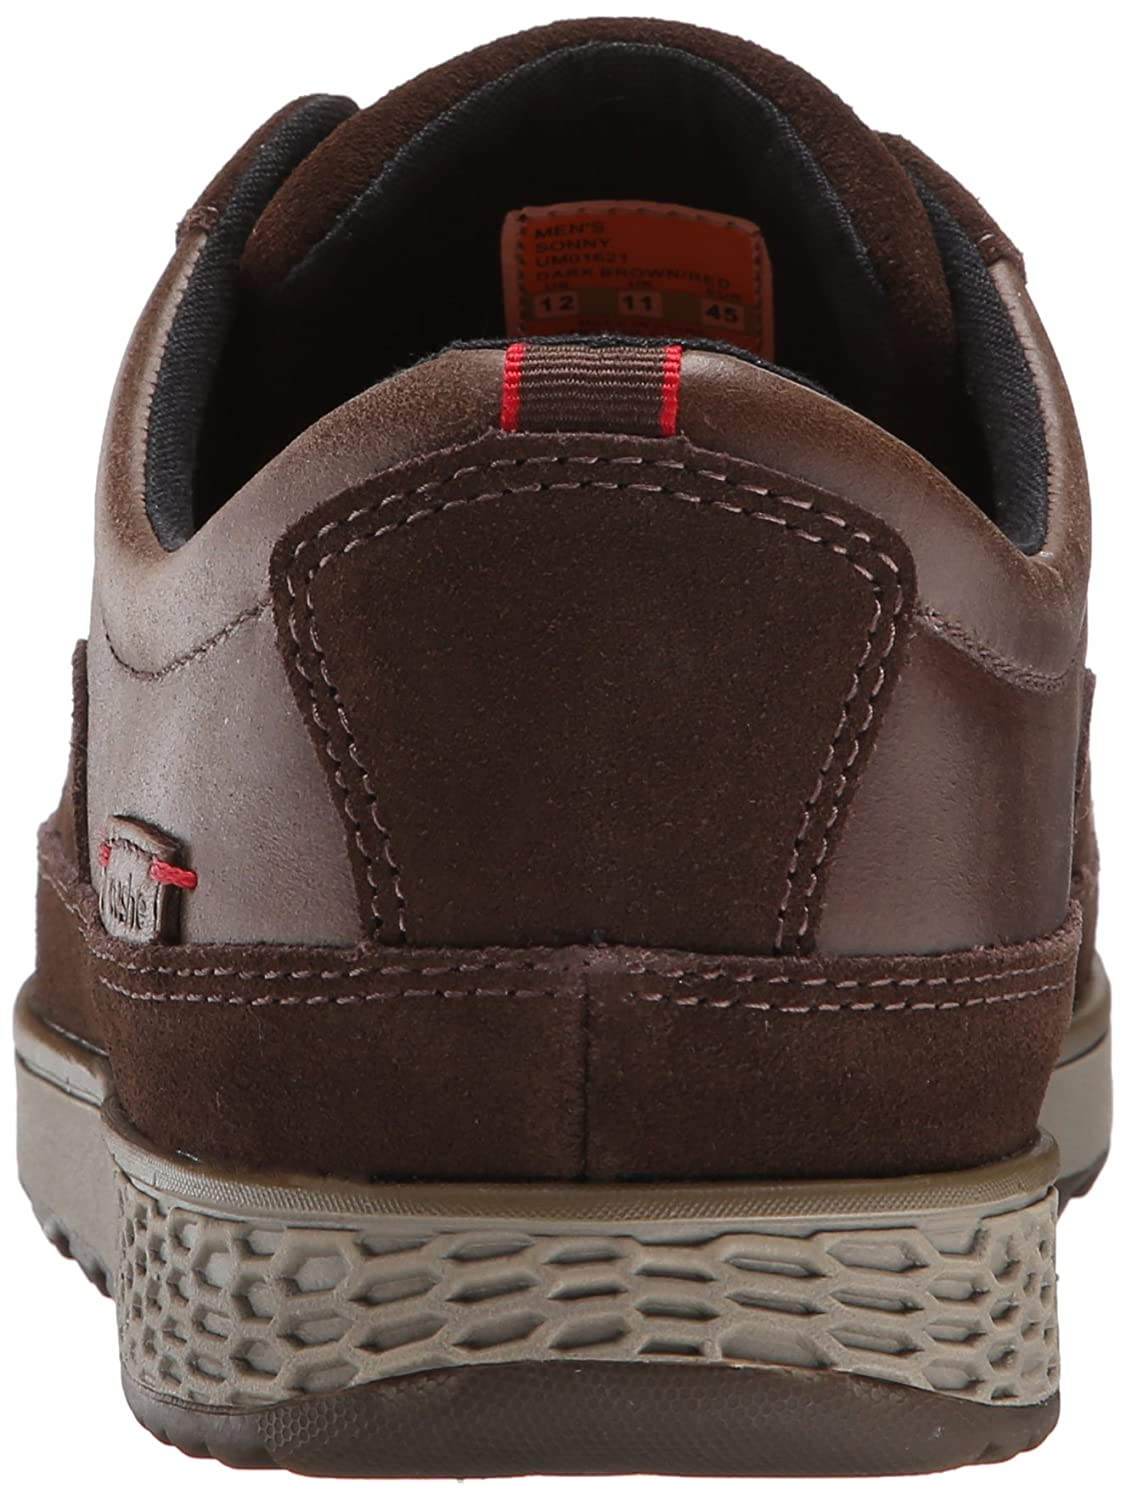 Cushe Sonny Lace up Sneaker B00T3LJ7VA Brown 44 BR/11 M US|Dark Brown B00T3LJ7VA edf290